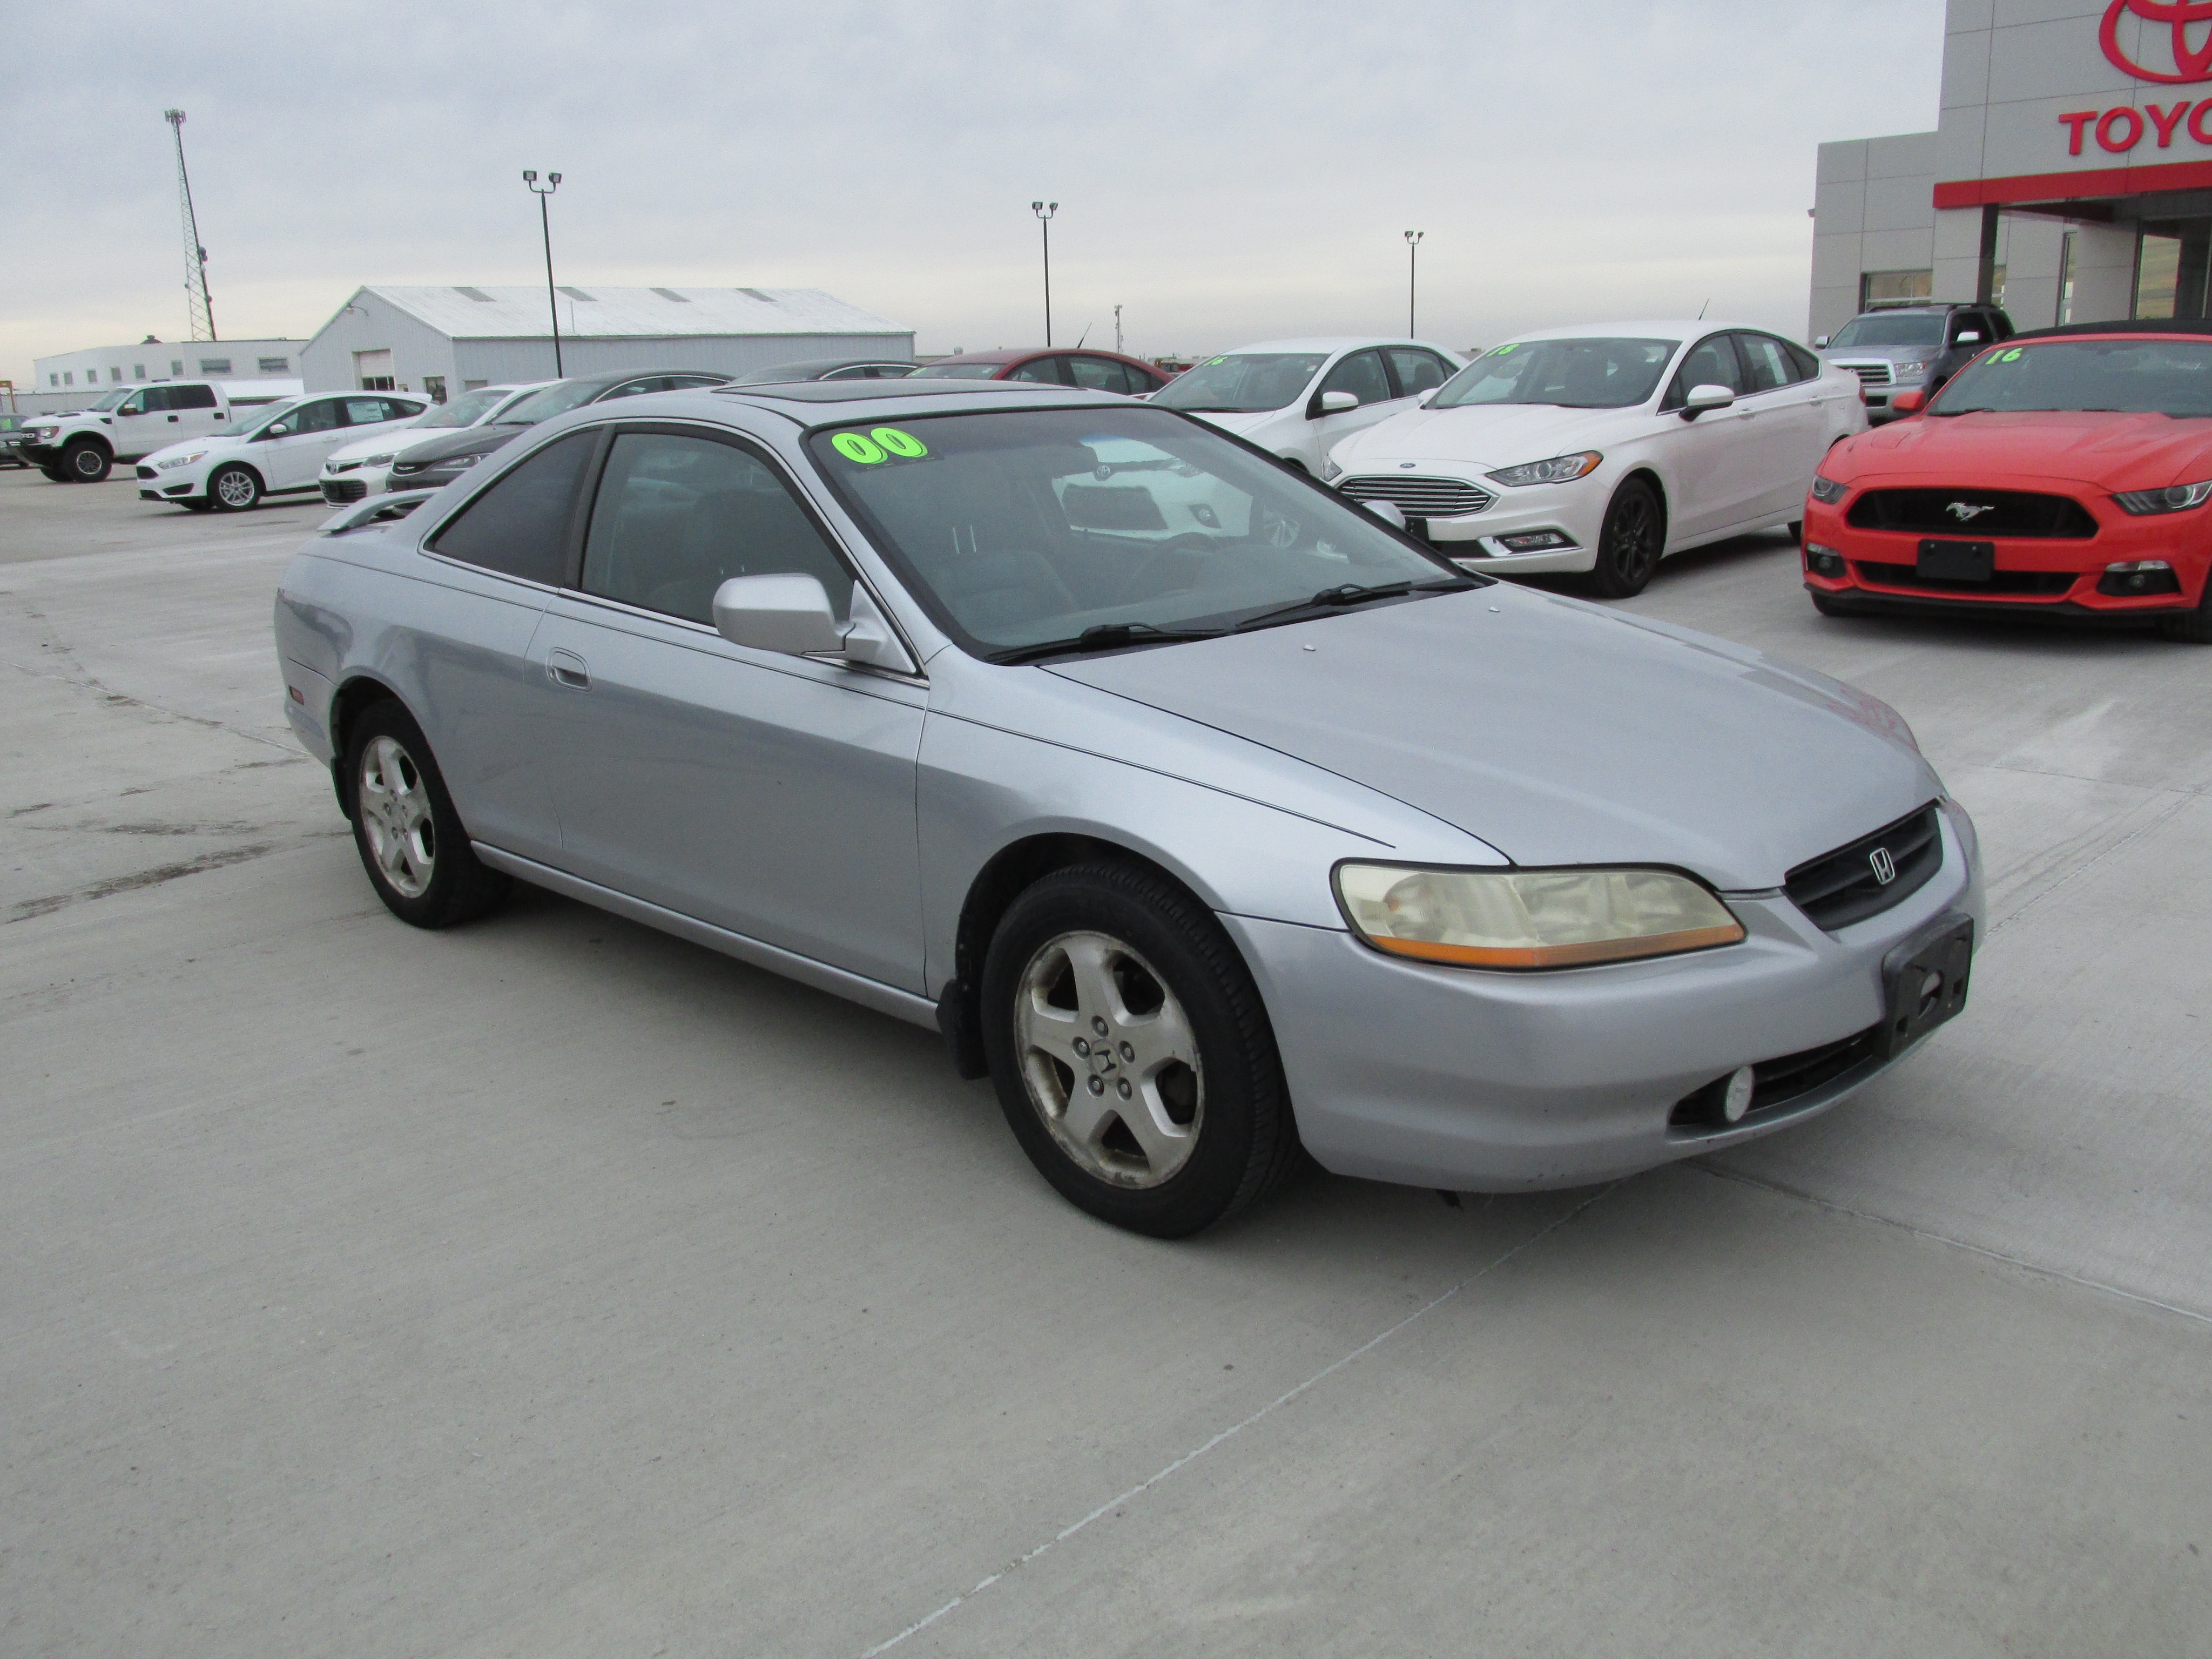 ... 2000 Honda Accord 3.0 EX W/Leather Coupe ...